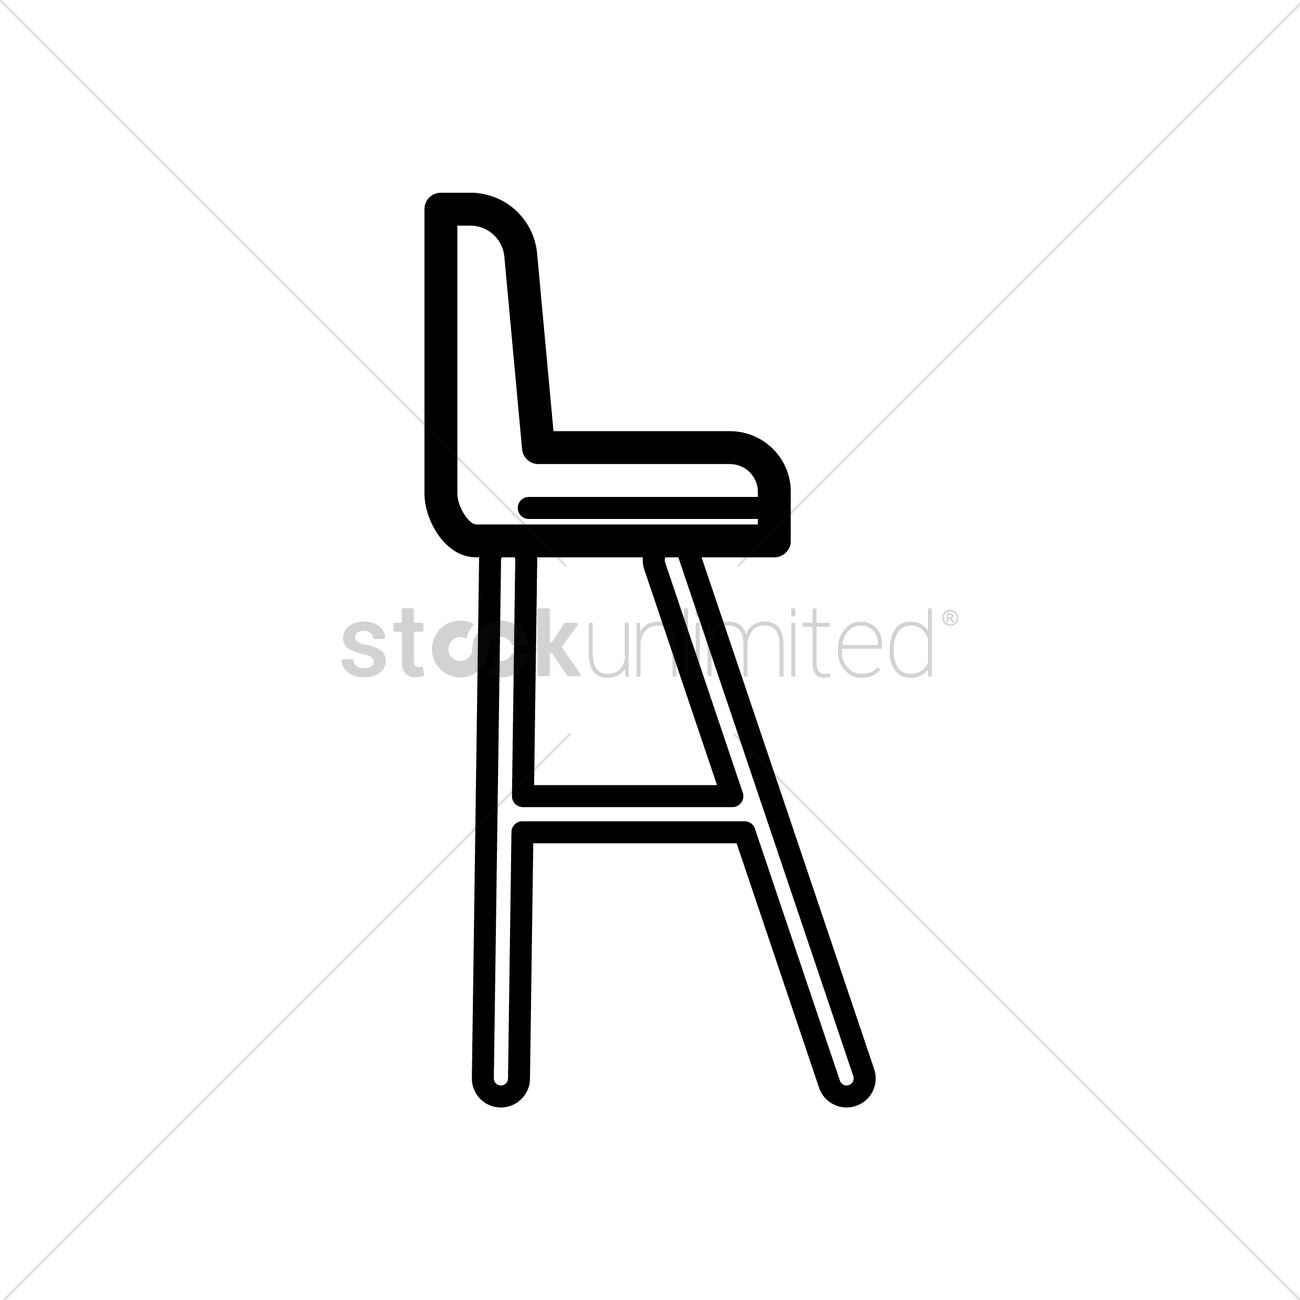 Tennis umpire chair Vector Image.